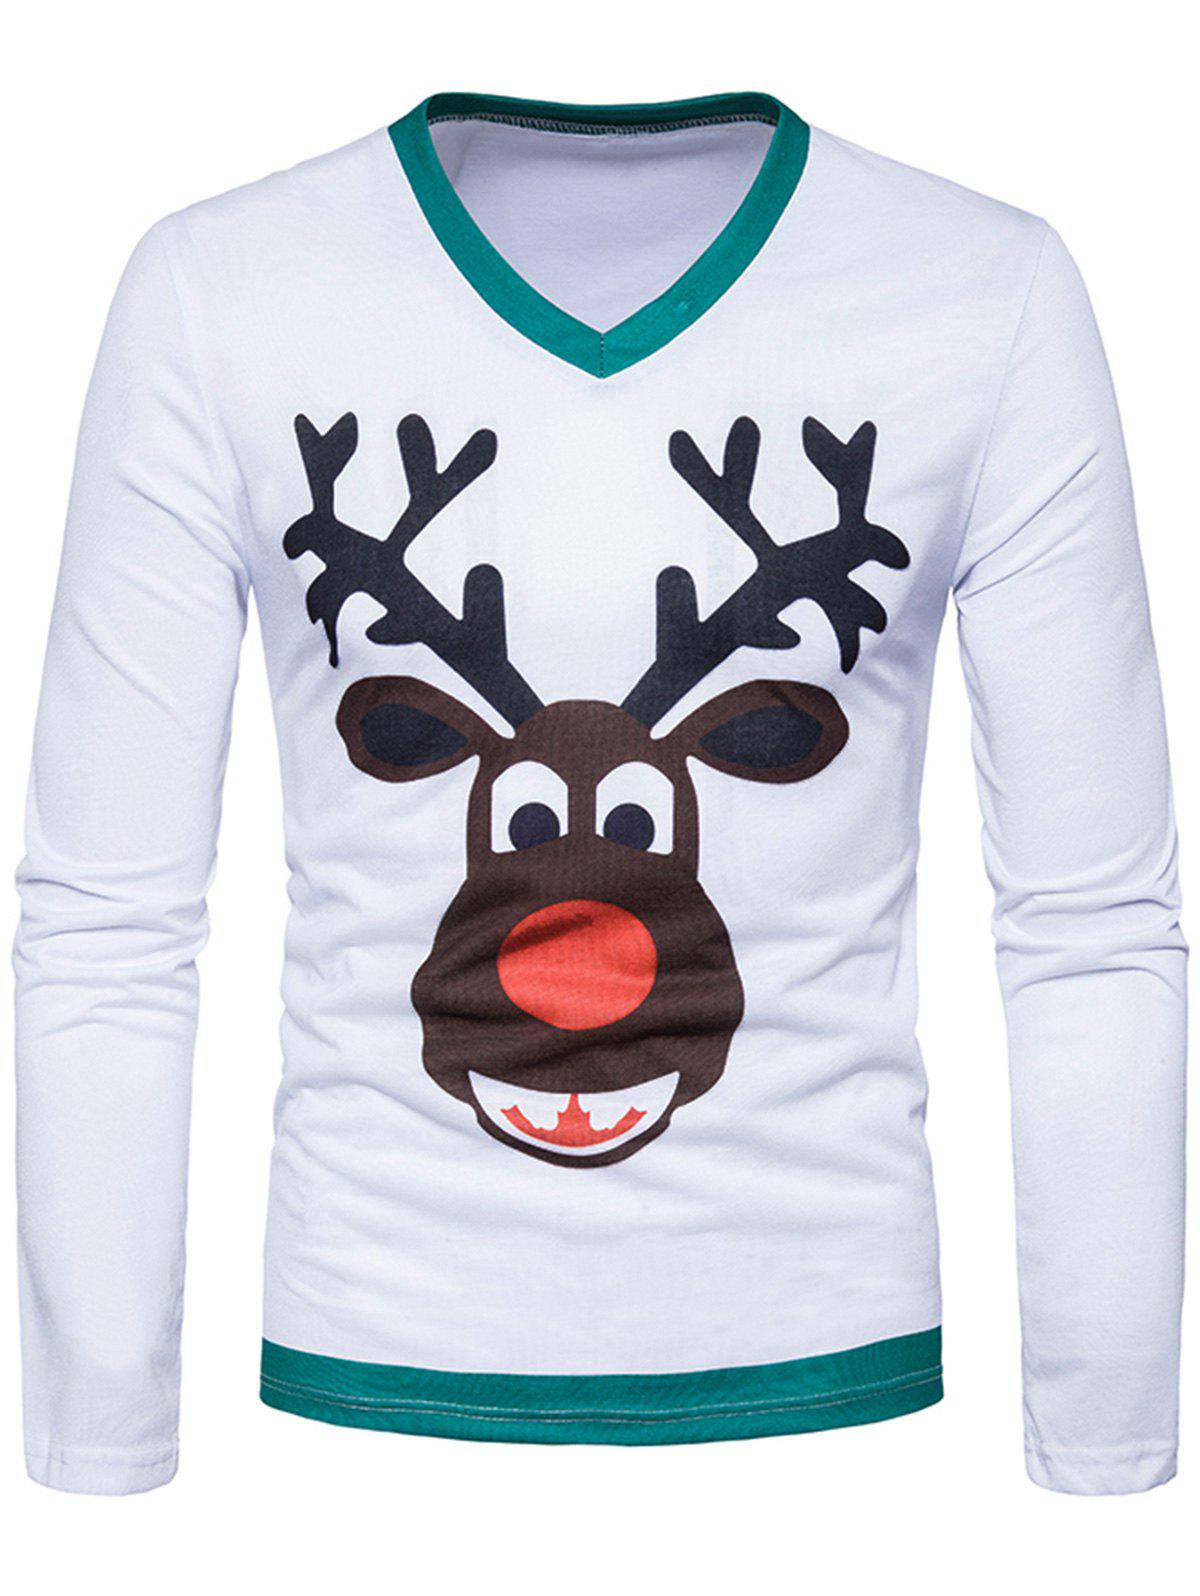 3D Cartoon Reindeer Print Long Sleeve T-shirt - WHITE L